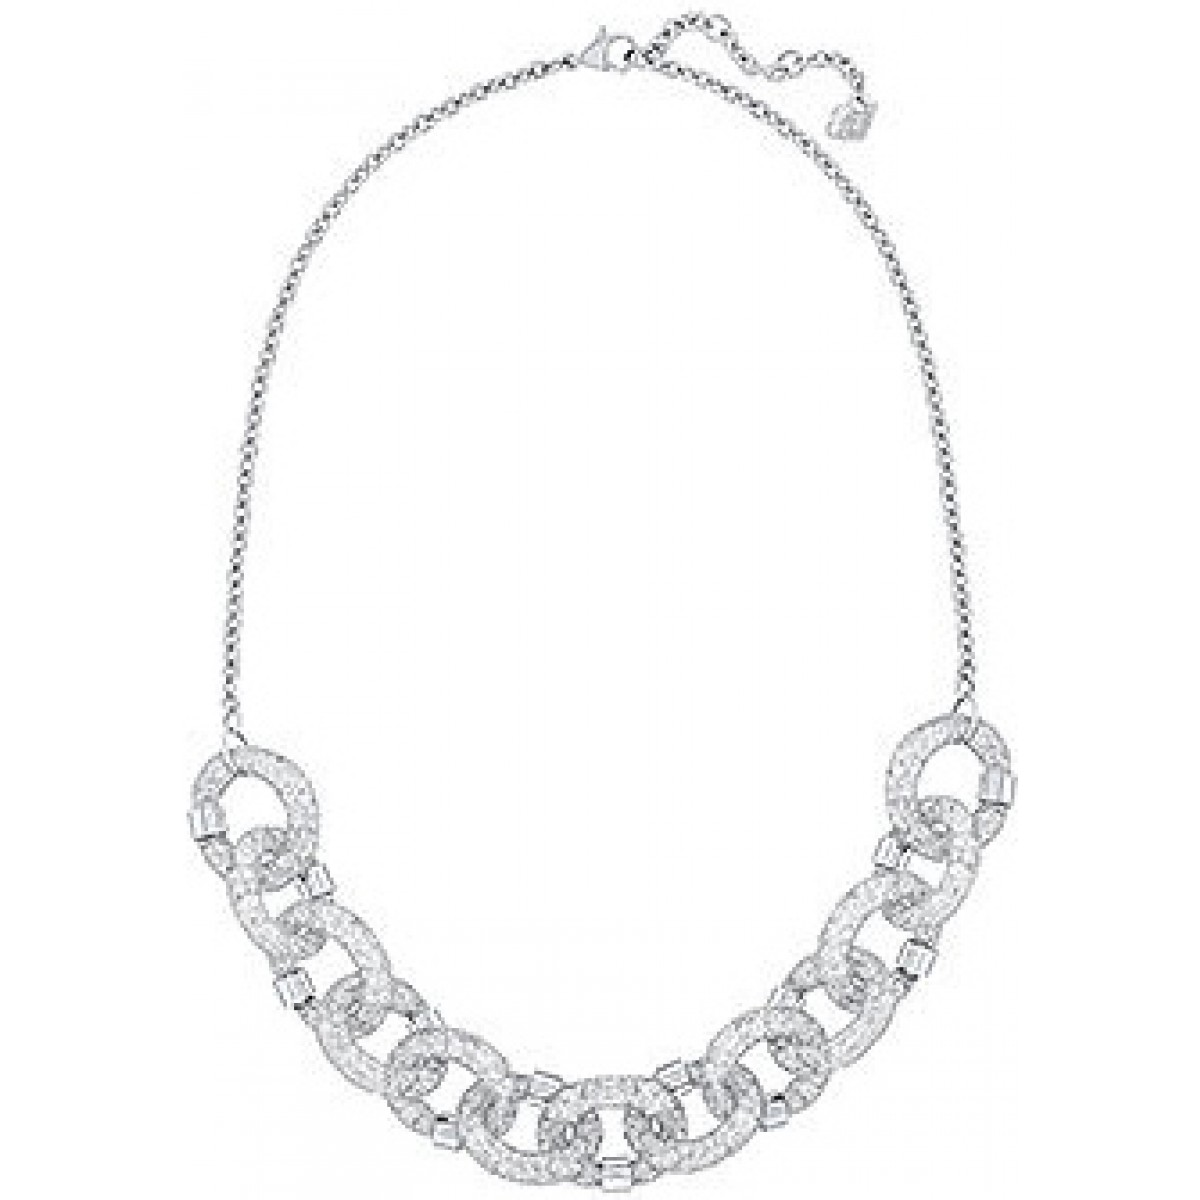 4b40611be28 swarovski stardust deluxe link necklace.jpg